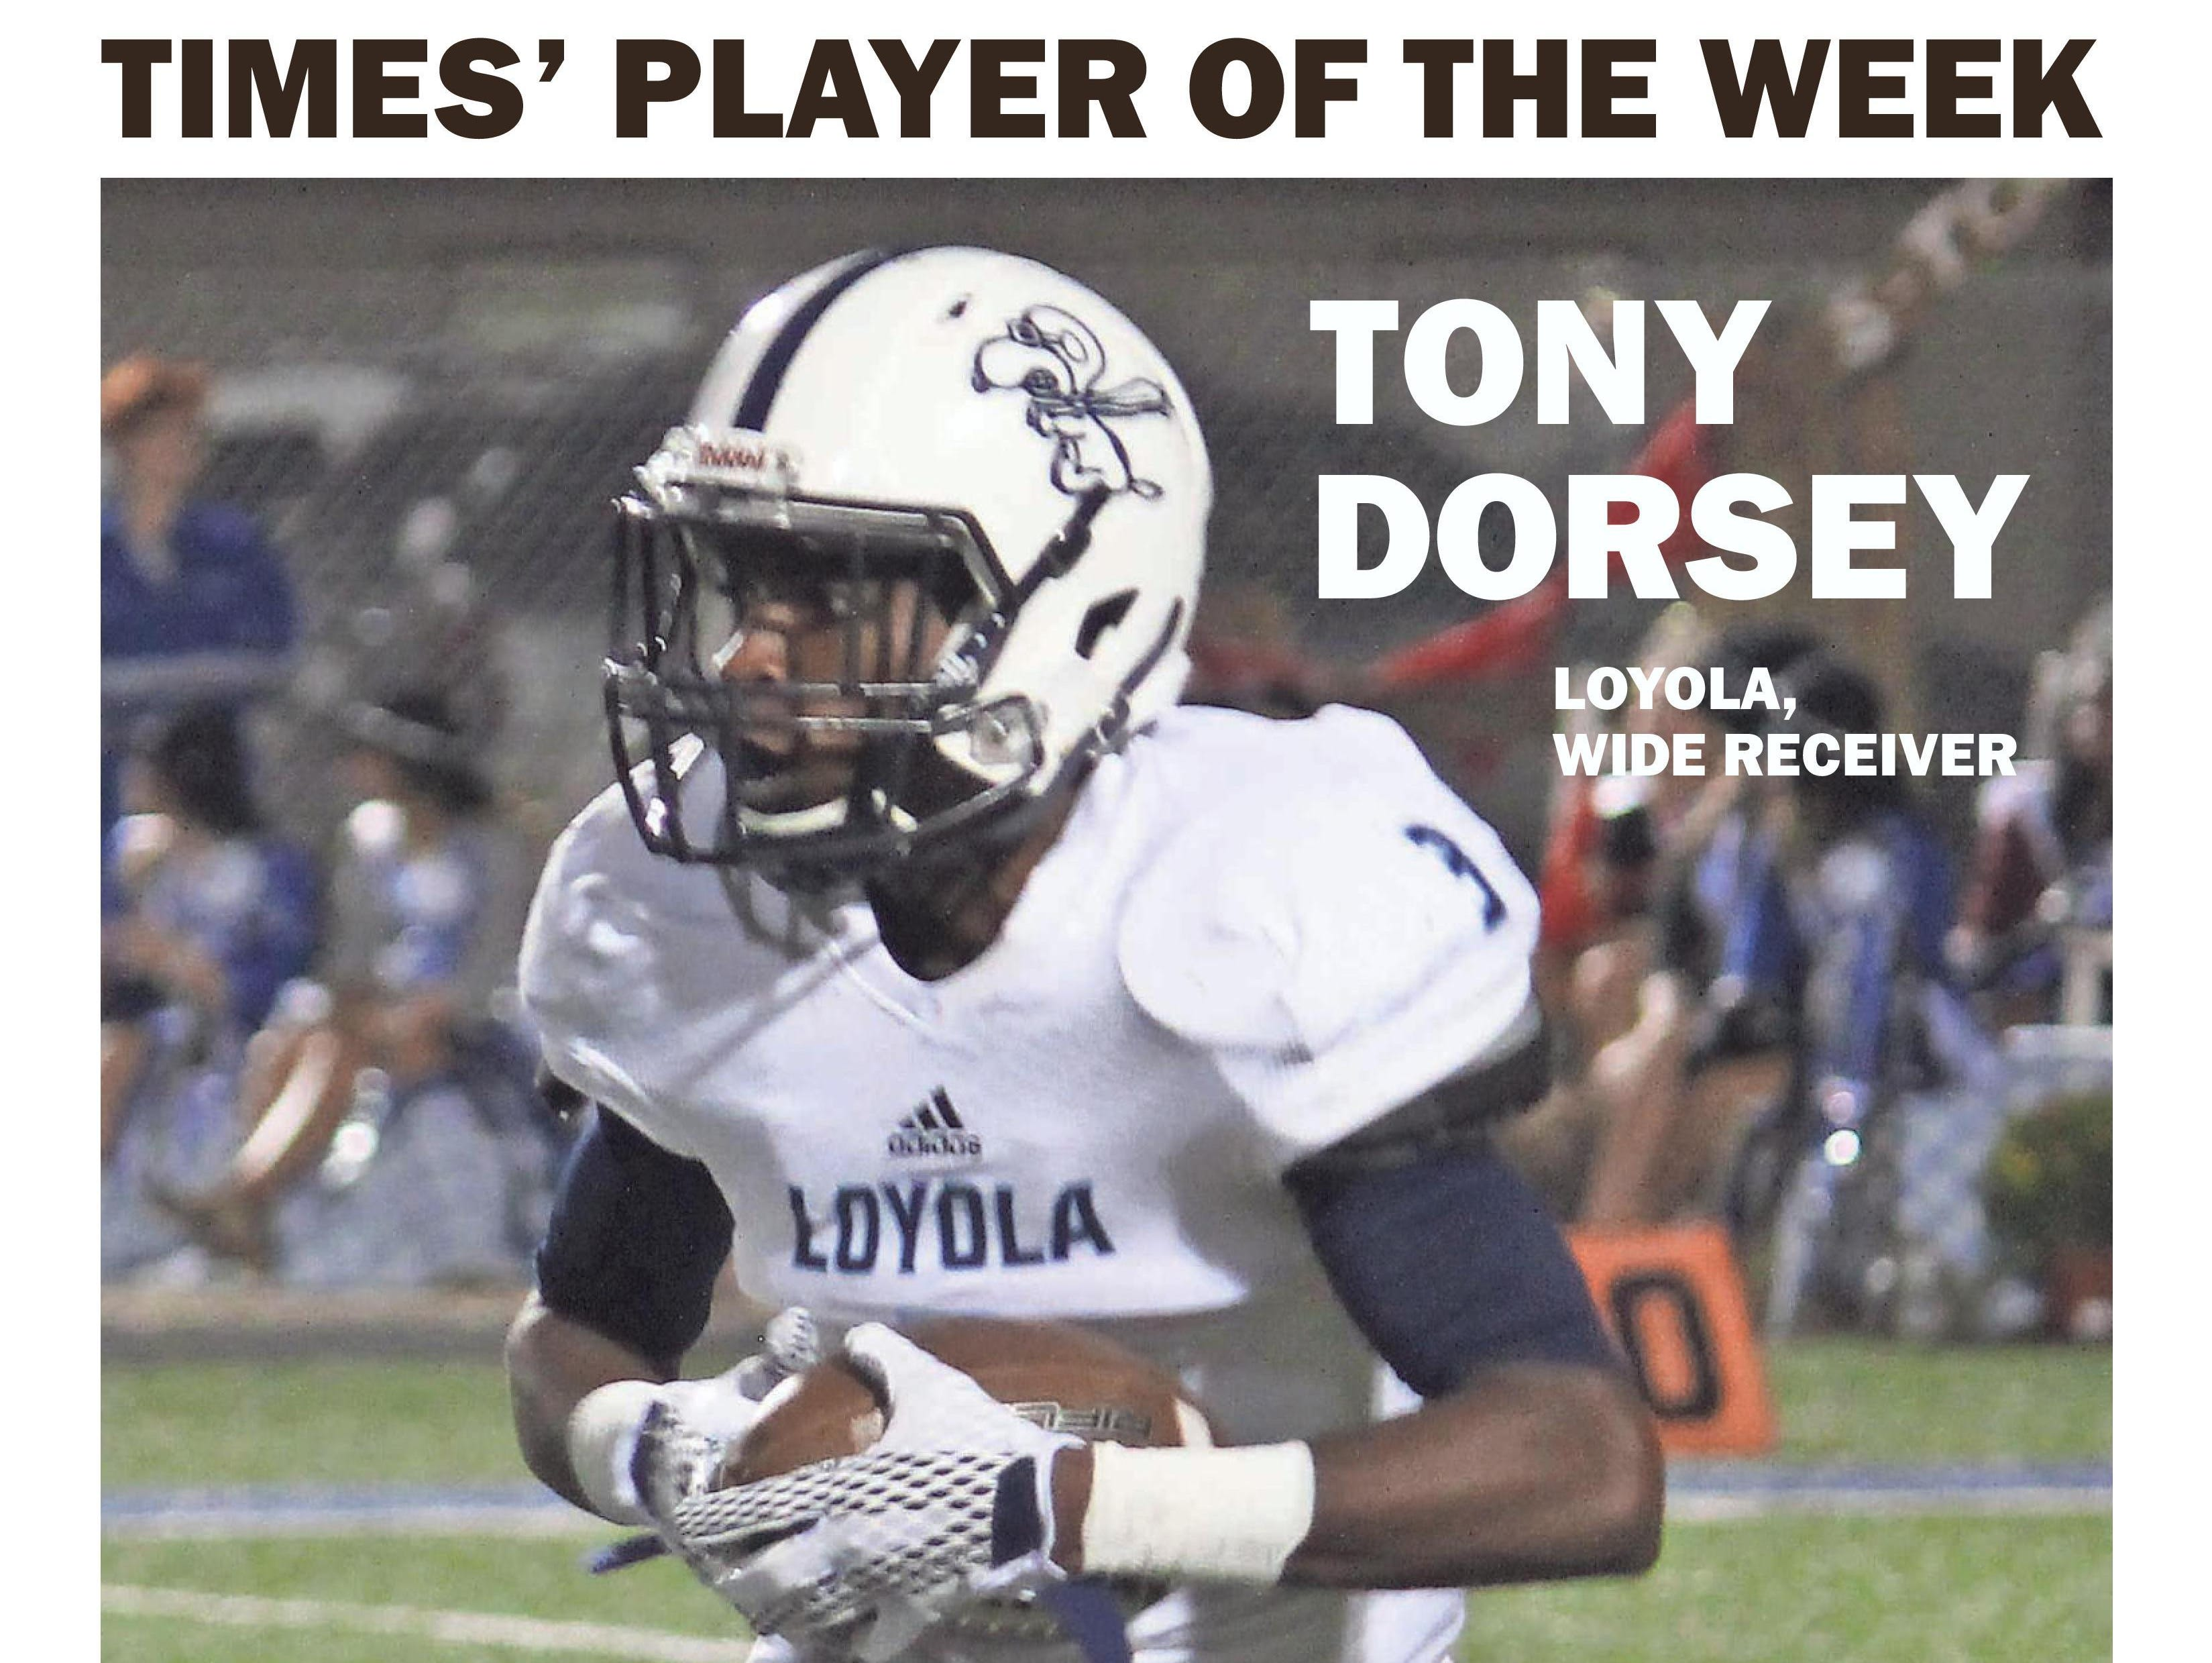 Loyola receiver Tony Dorsey captured Player of the Week honors for Week 7.